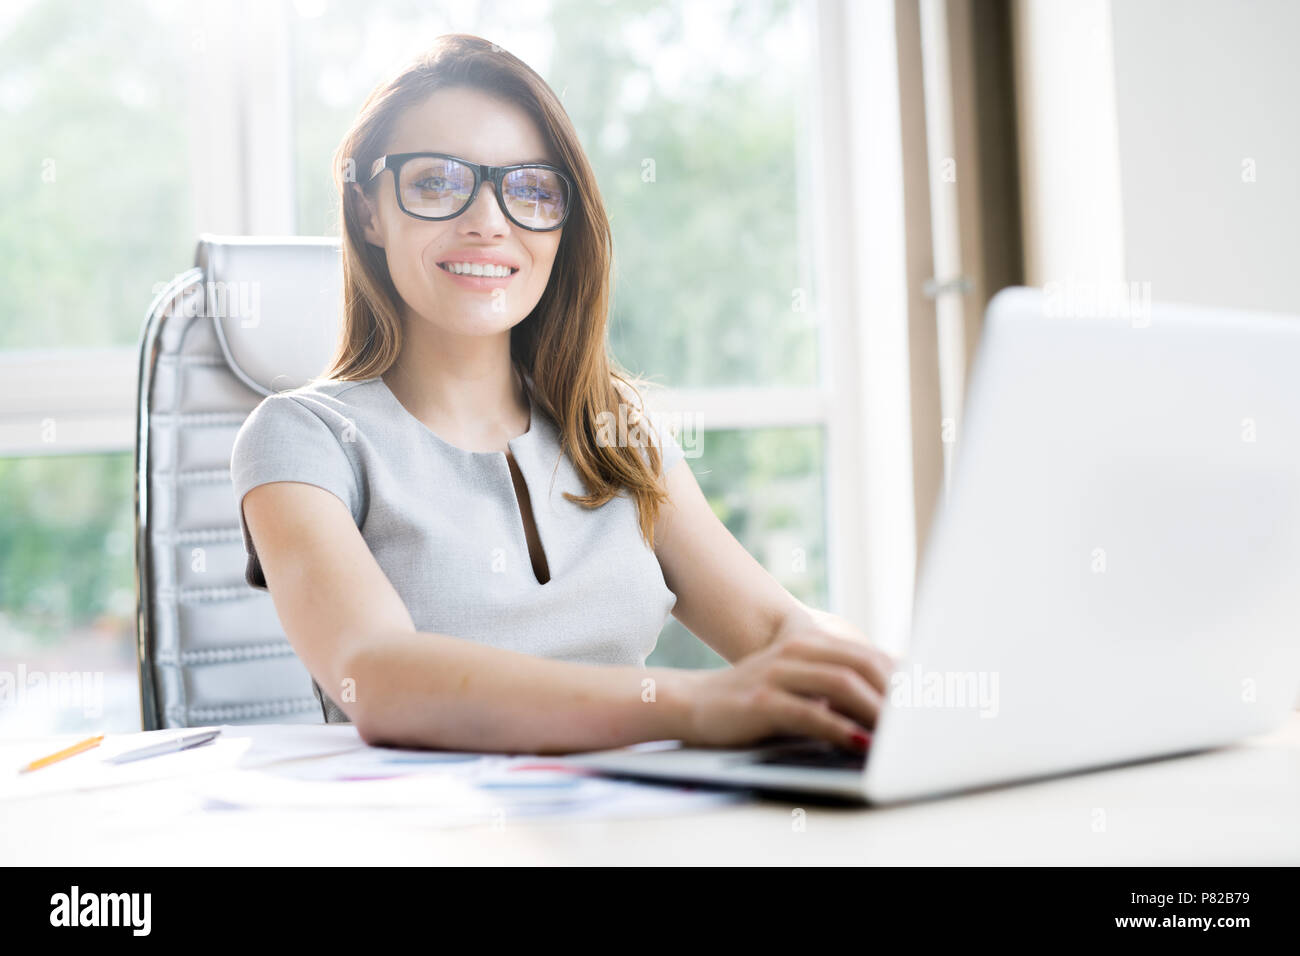 Young Businesswoman Using Laptop - Stock Image